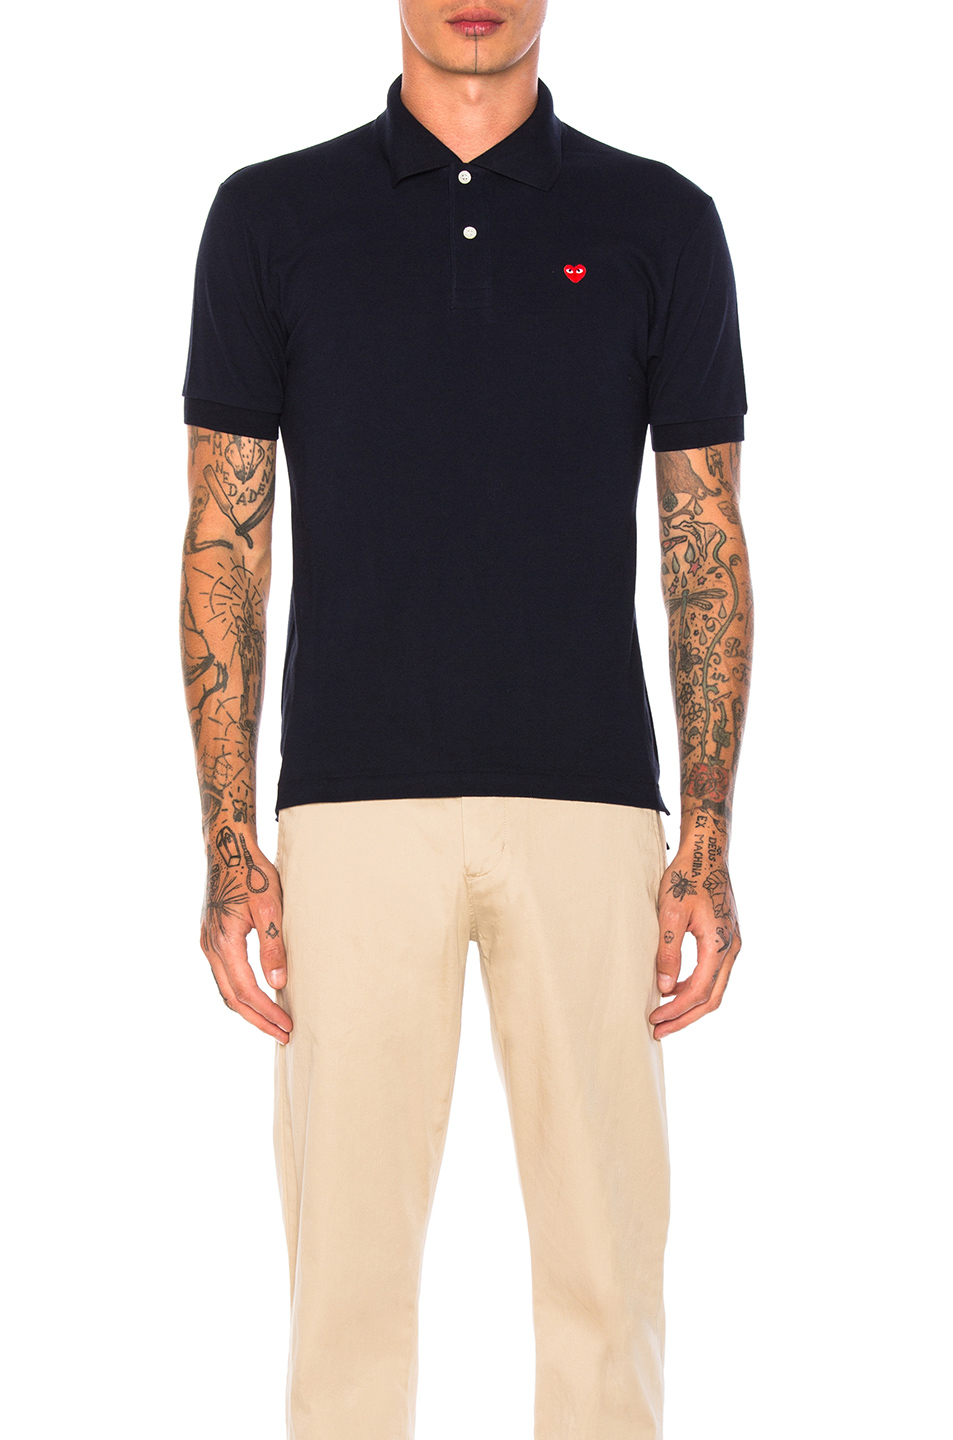 Comme Des Garcons PLAY Small Red Emblem Cotton Polo in Blue